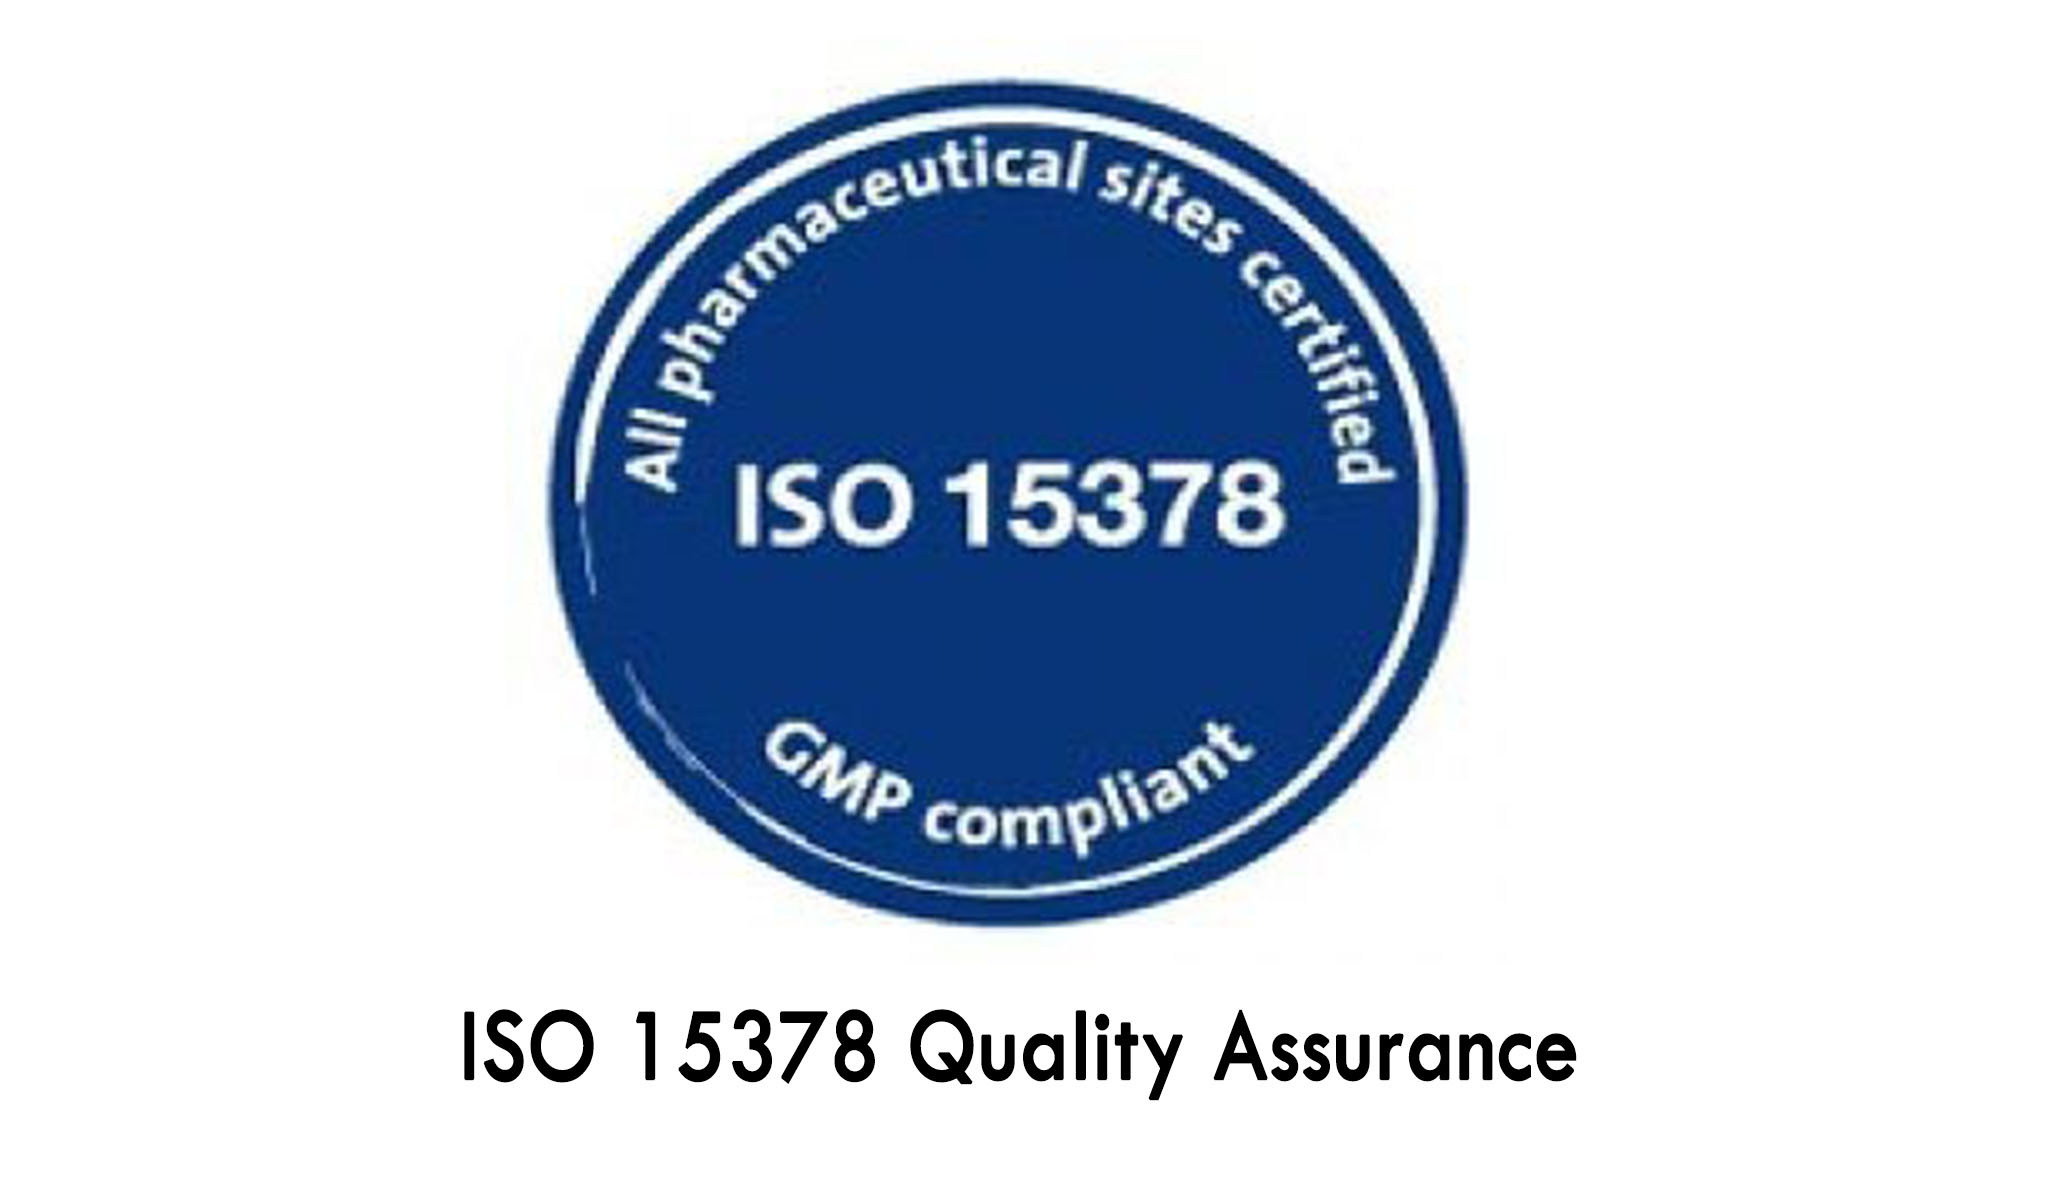 ISO 15378 Quality Assurance